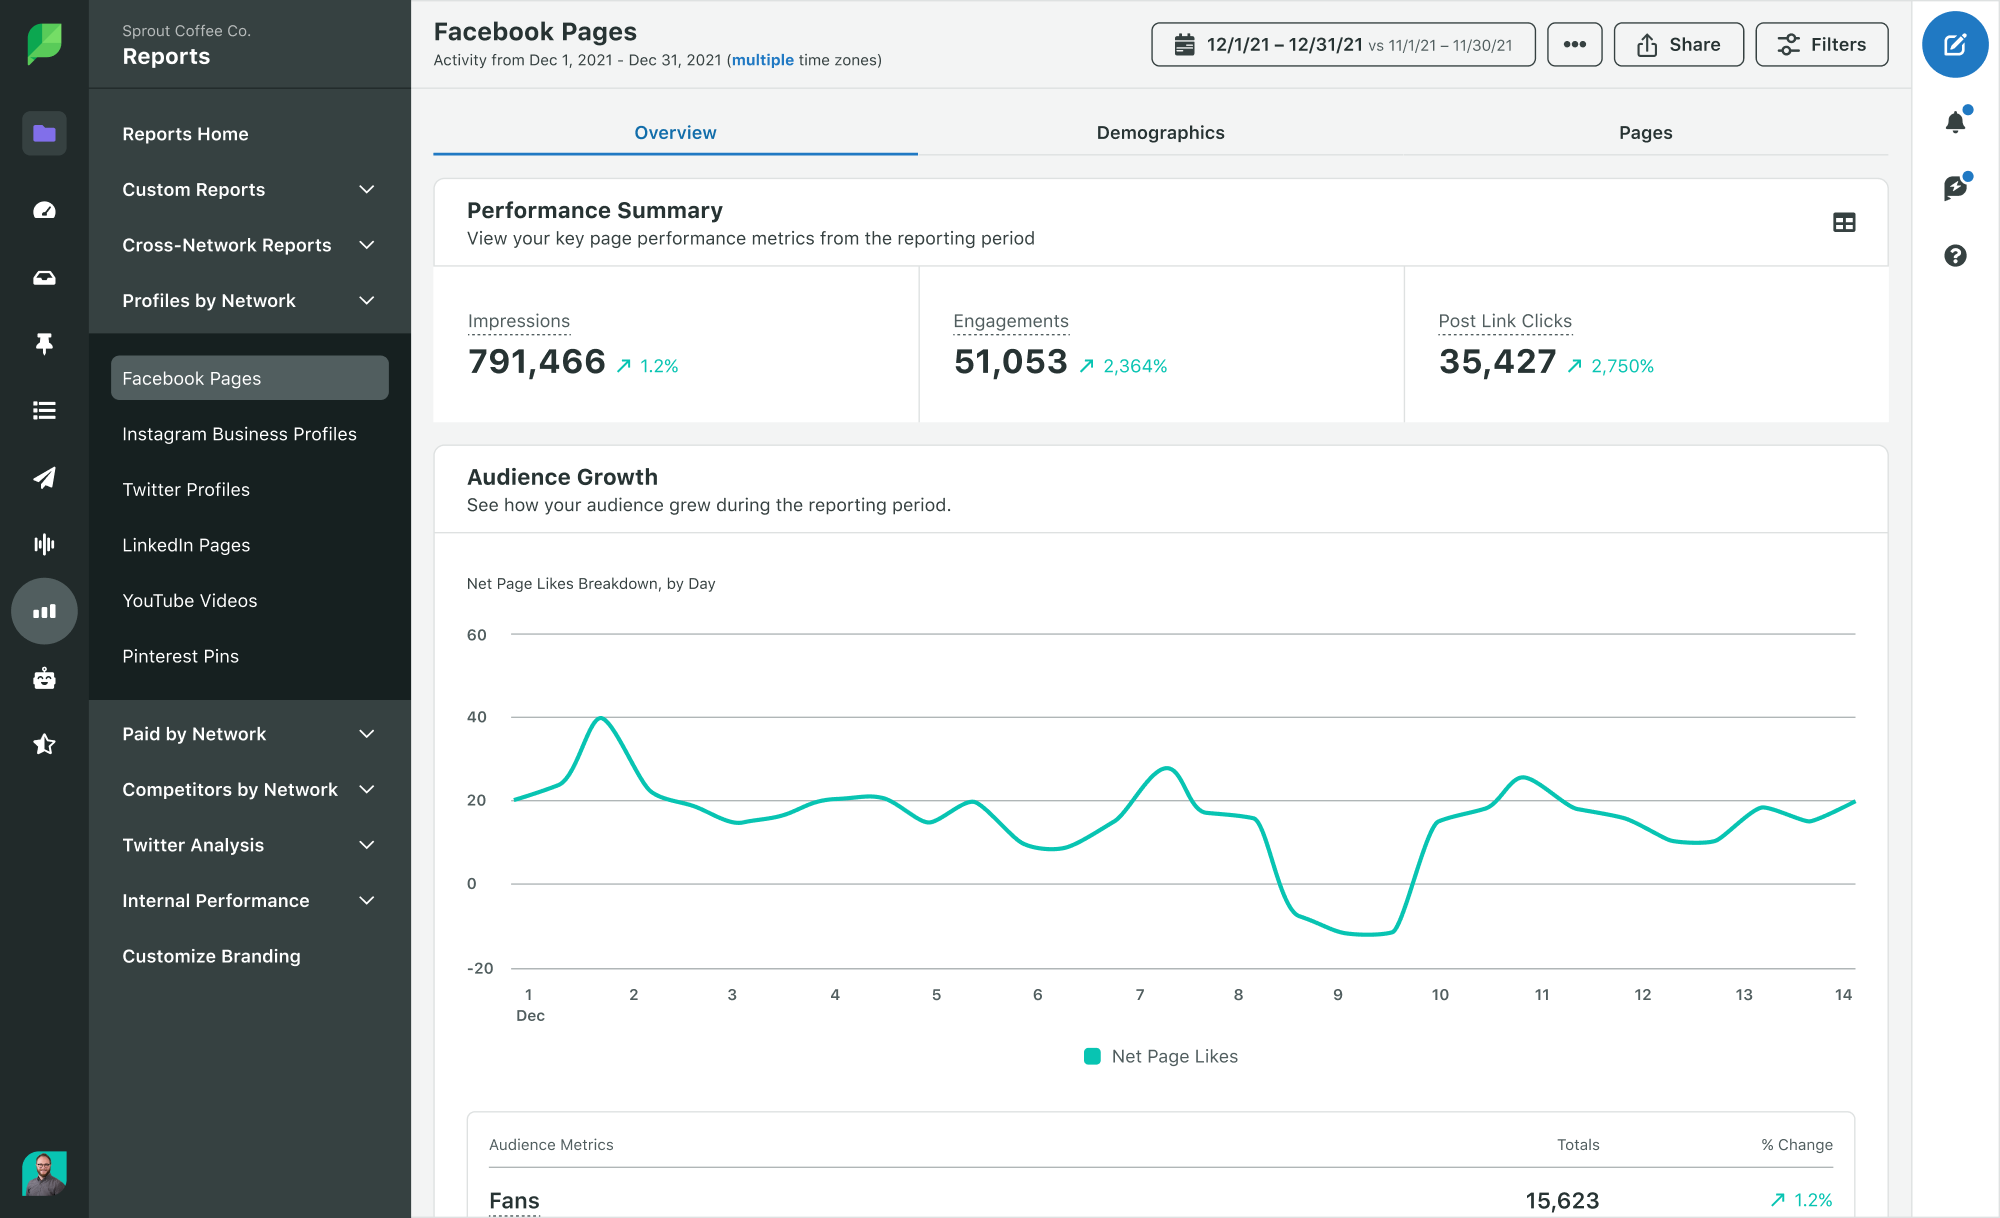 Sprout Analytics Facebook Pages Report